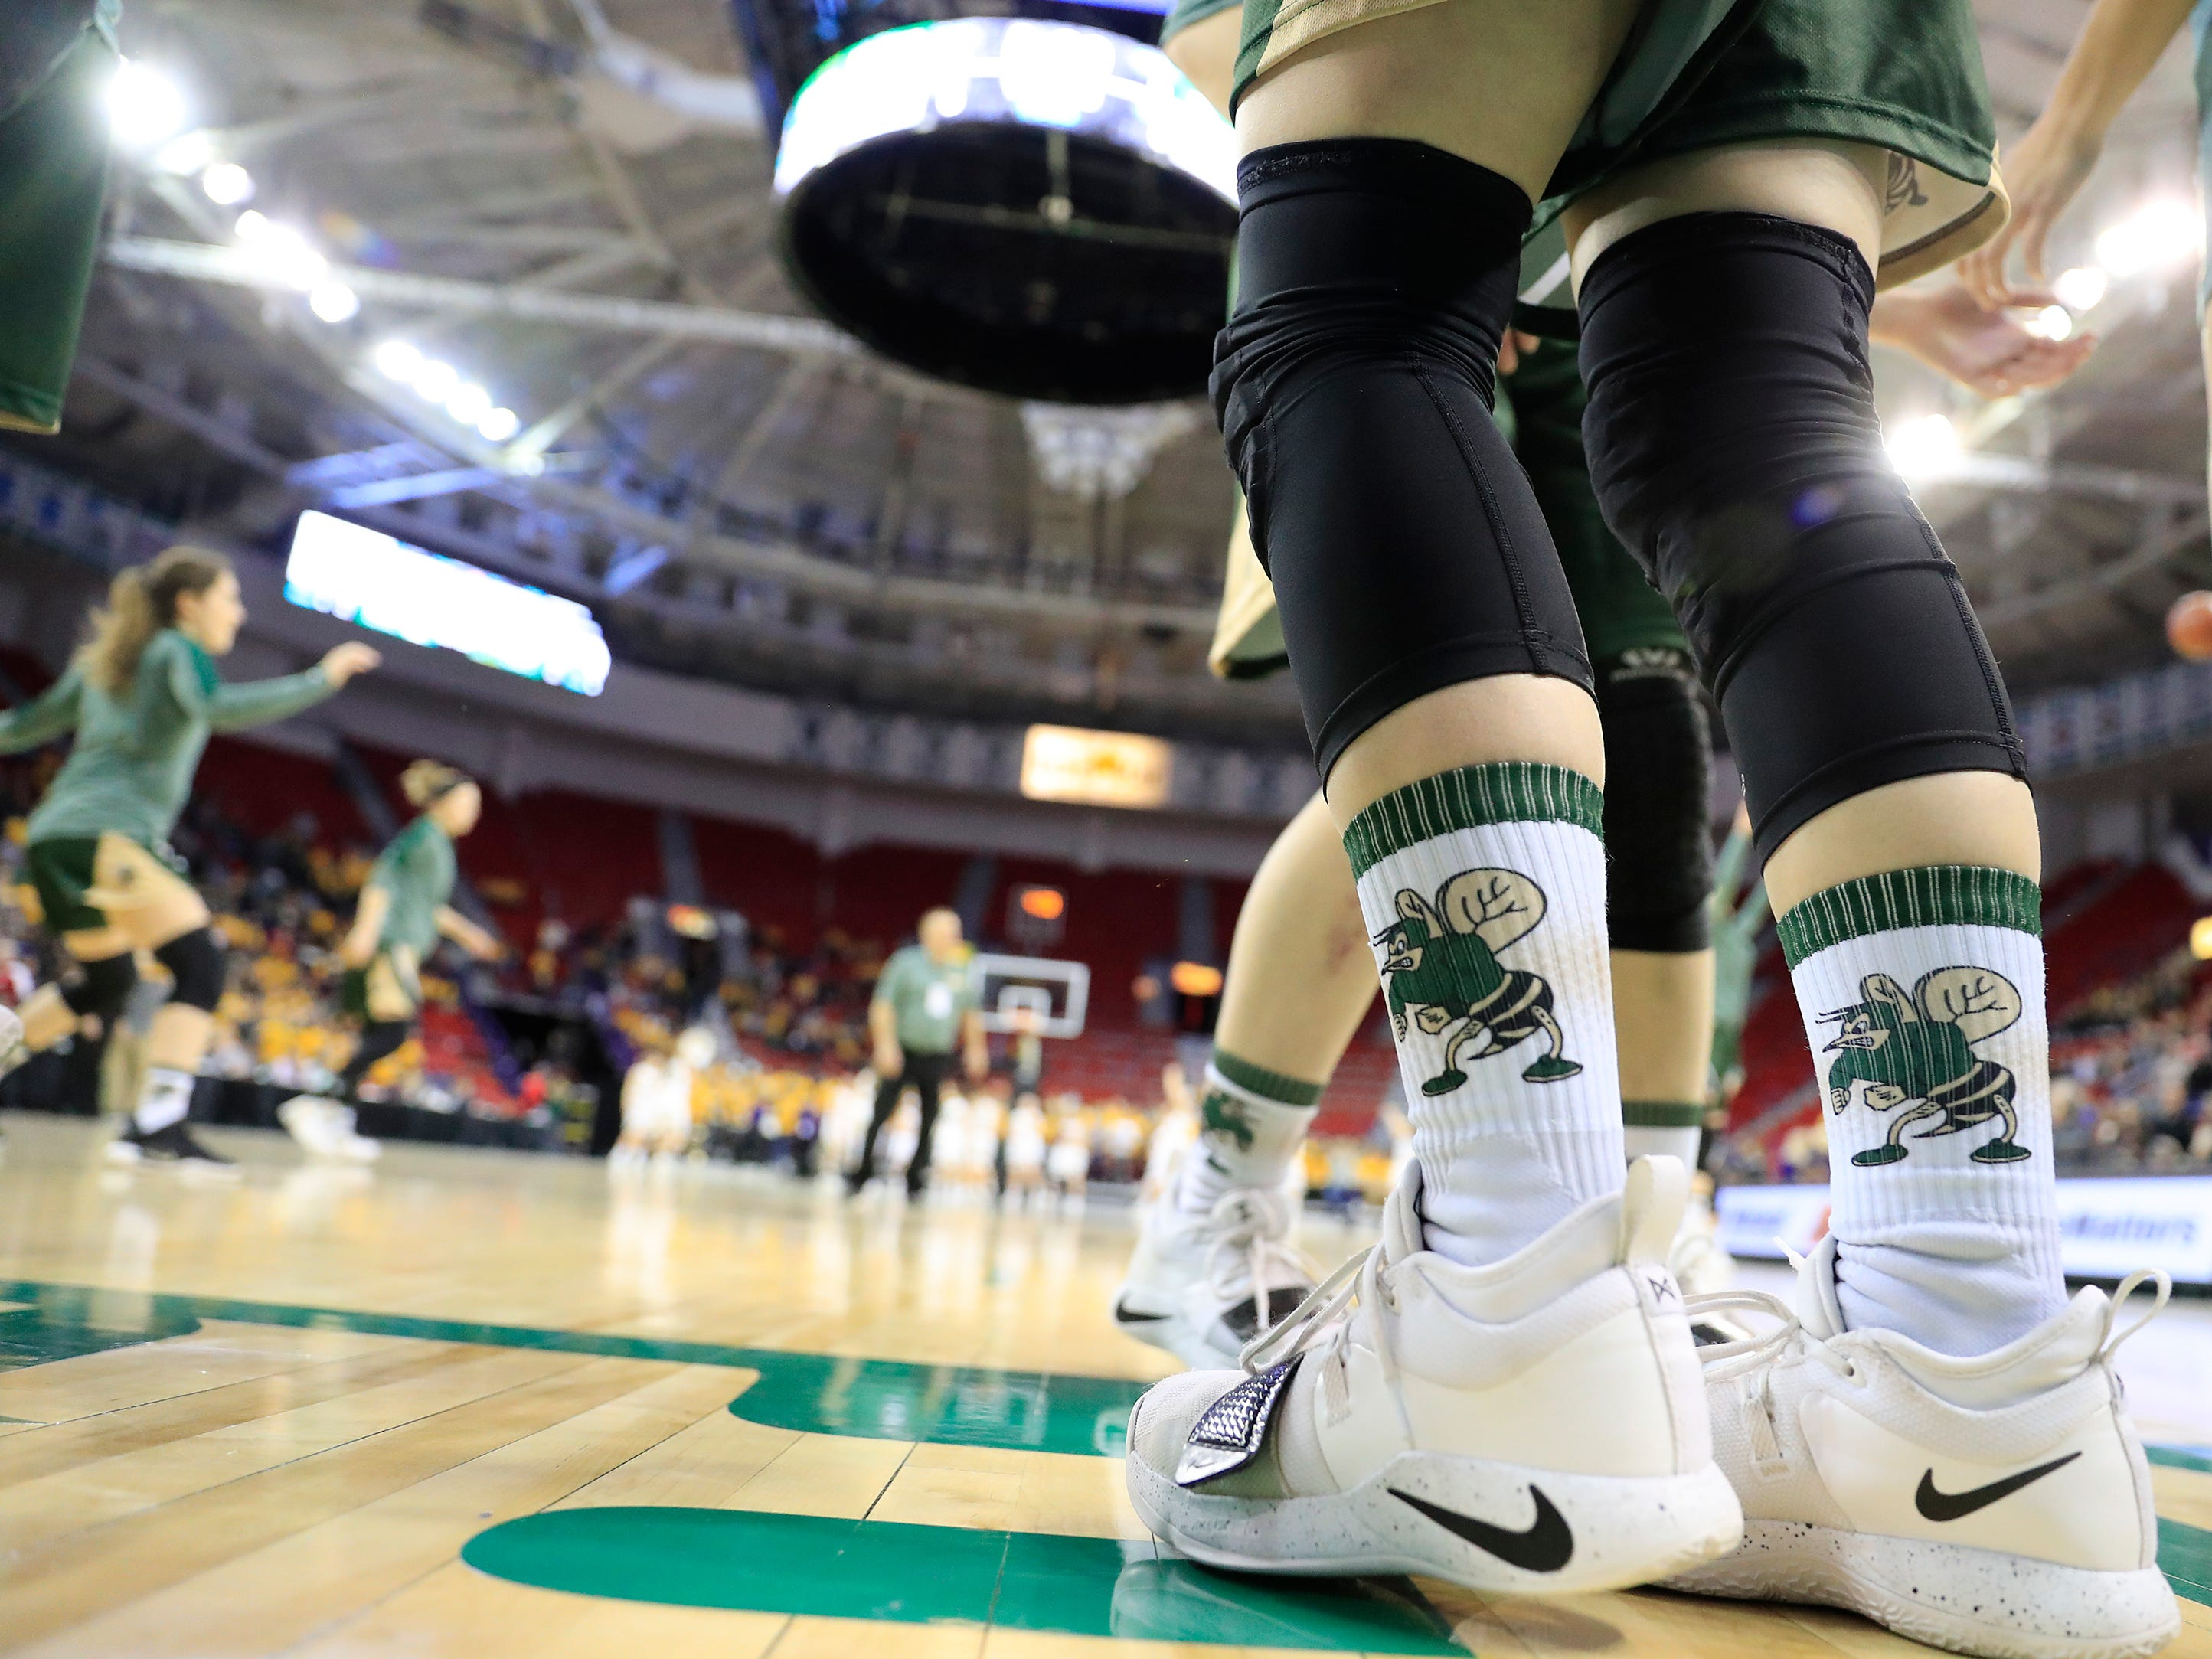 Colby players warm up for a Division 3 semifinal at the WIAA state girls basketball tournament at the Resch Center on Thursday, March 7, 2019, in Ashwaubenon, Wis.